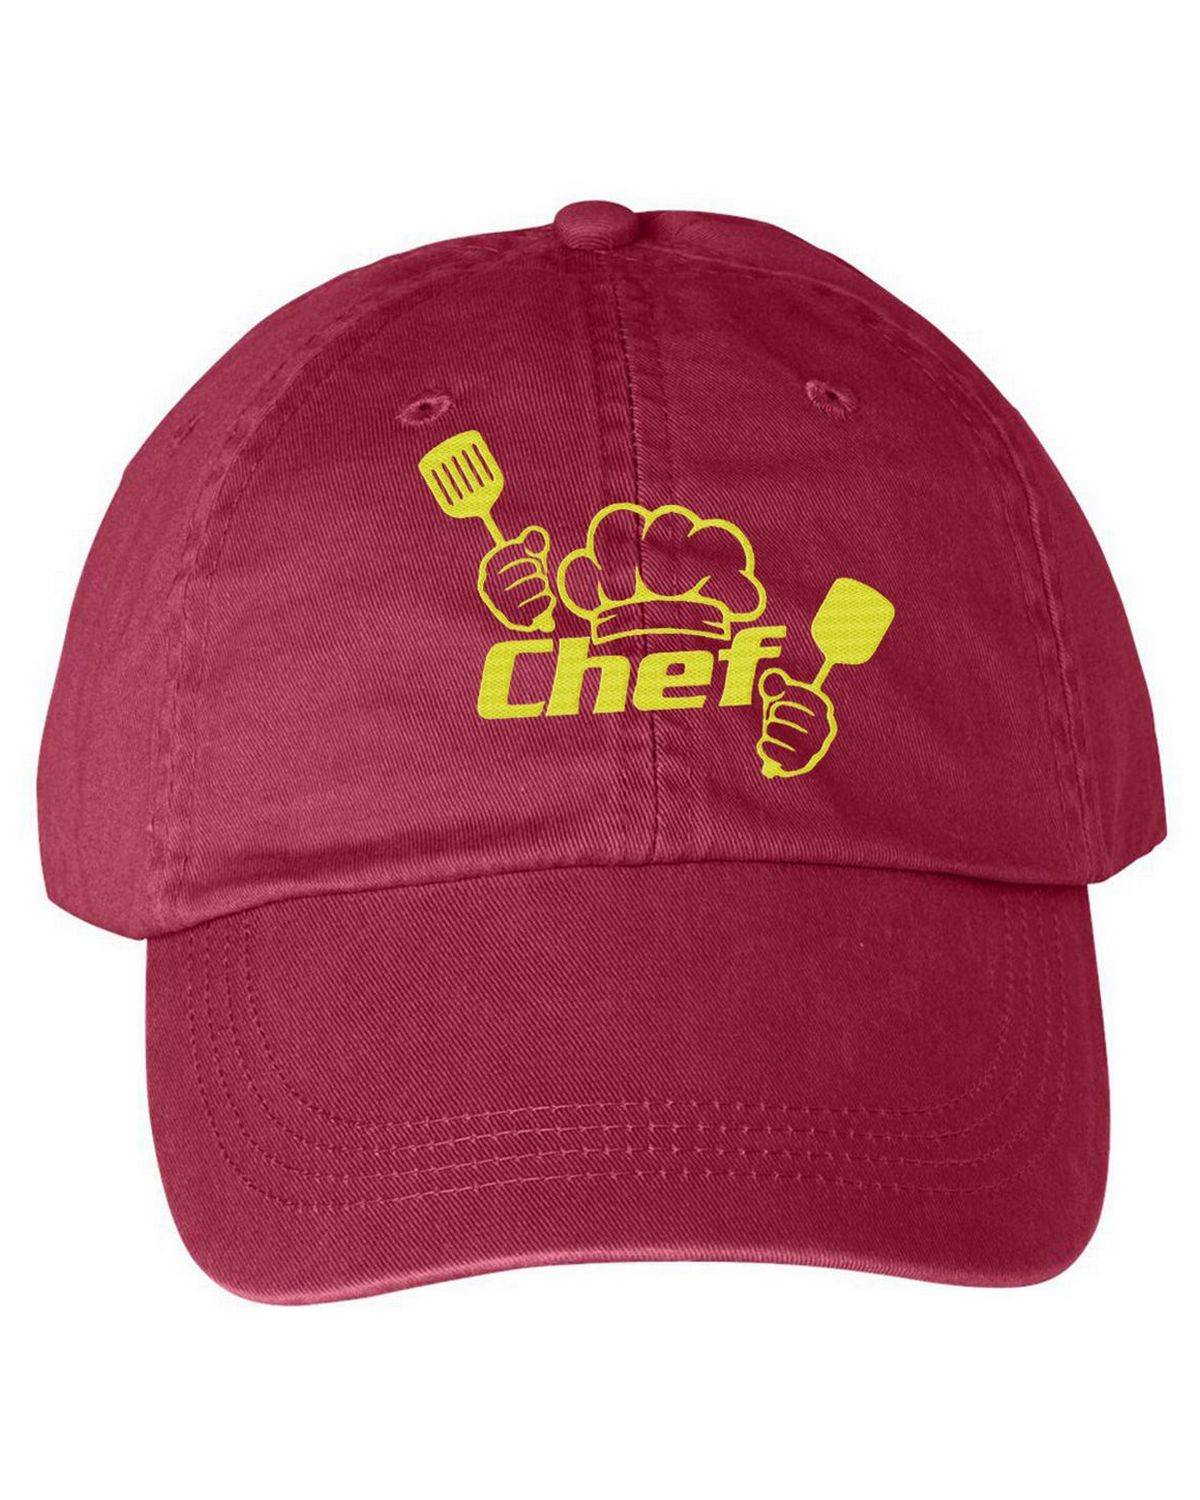 dee31c4942a31 Logo Embroidered Anvil 146 Solid Pigment Dye Cap